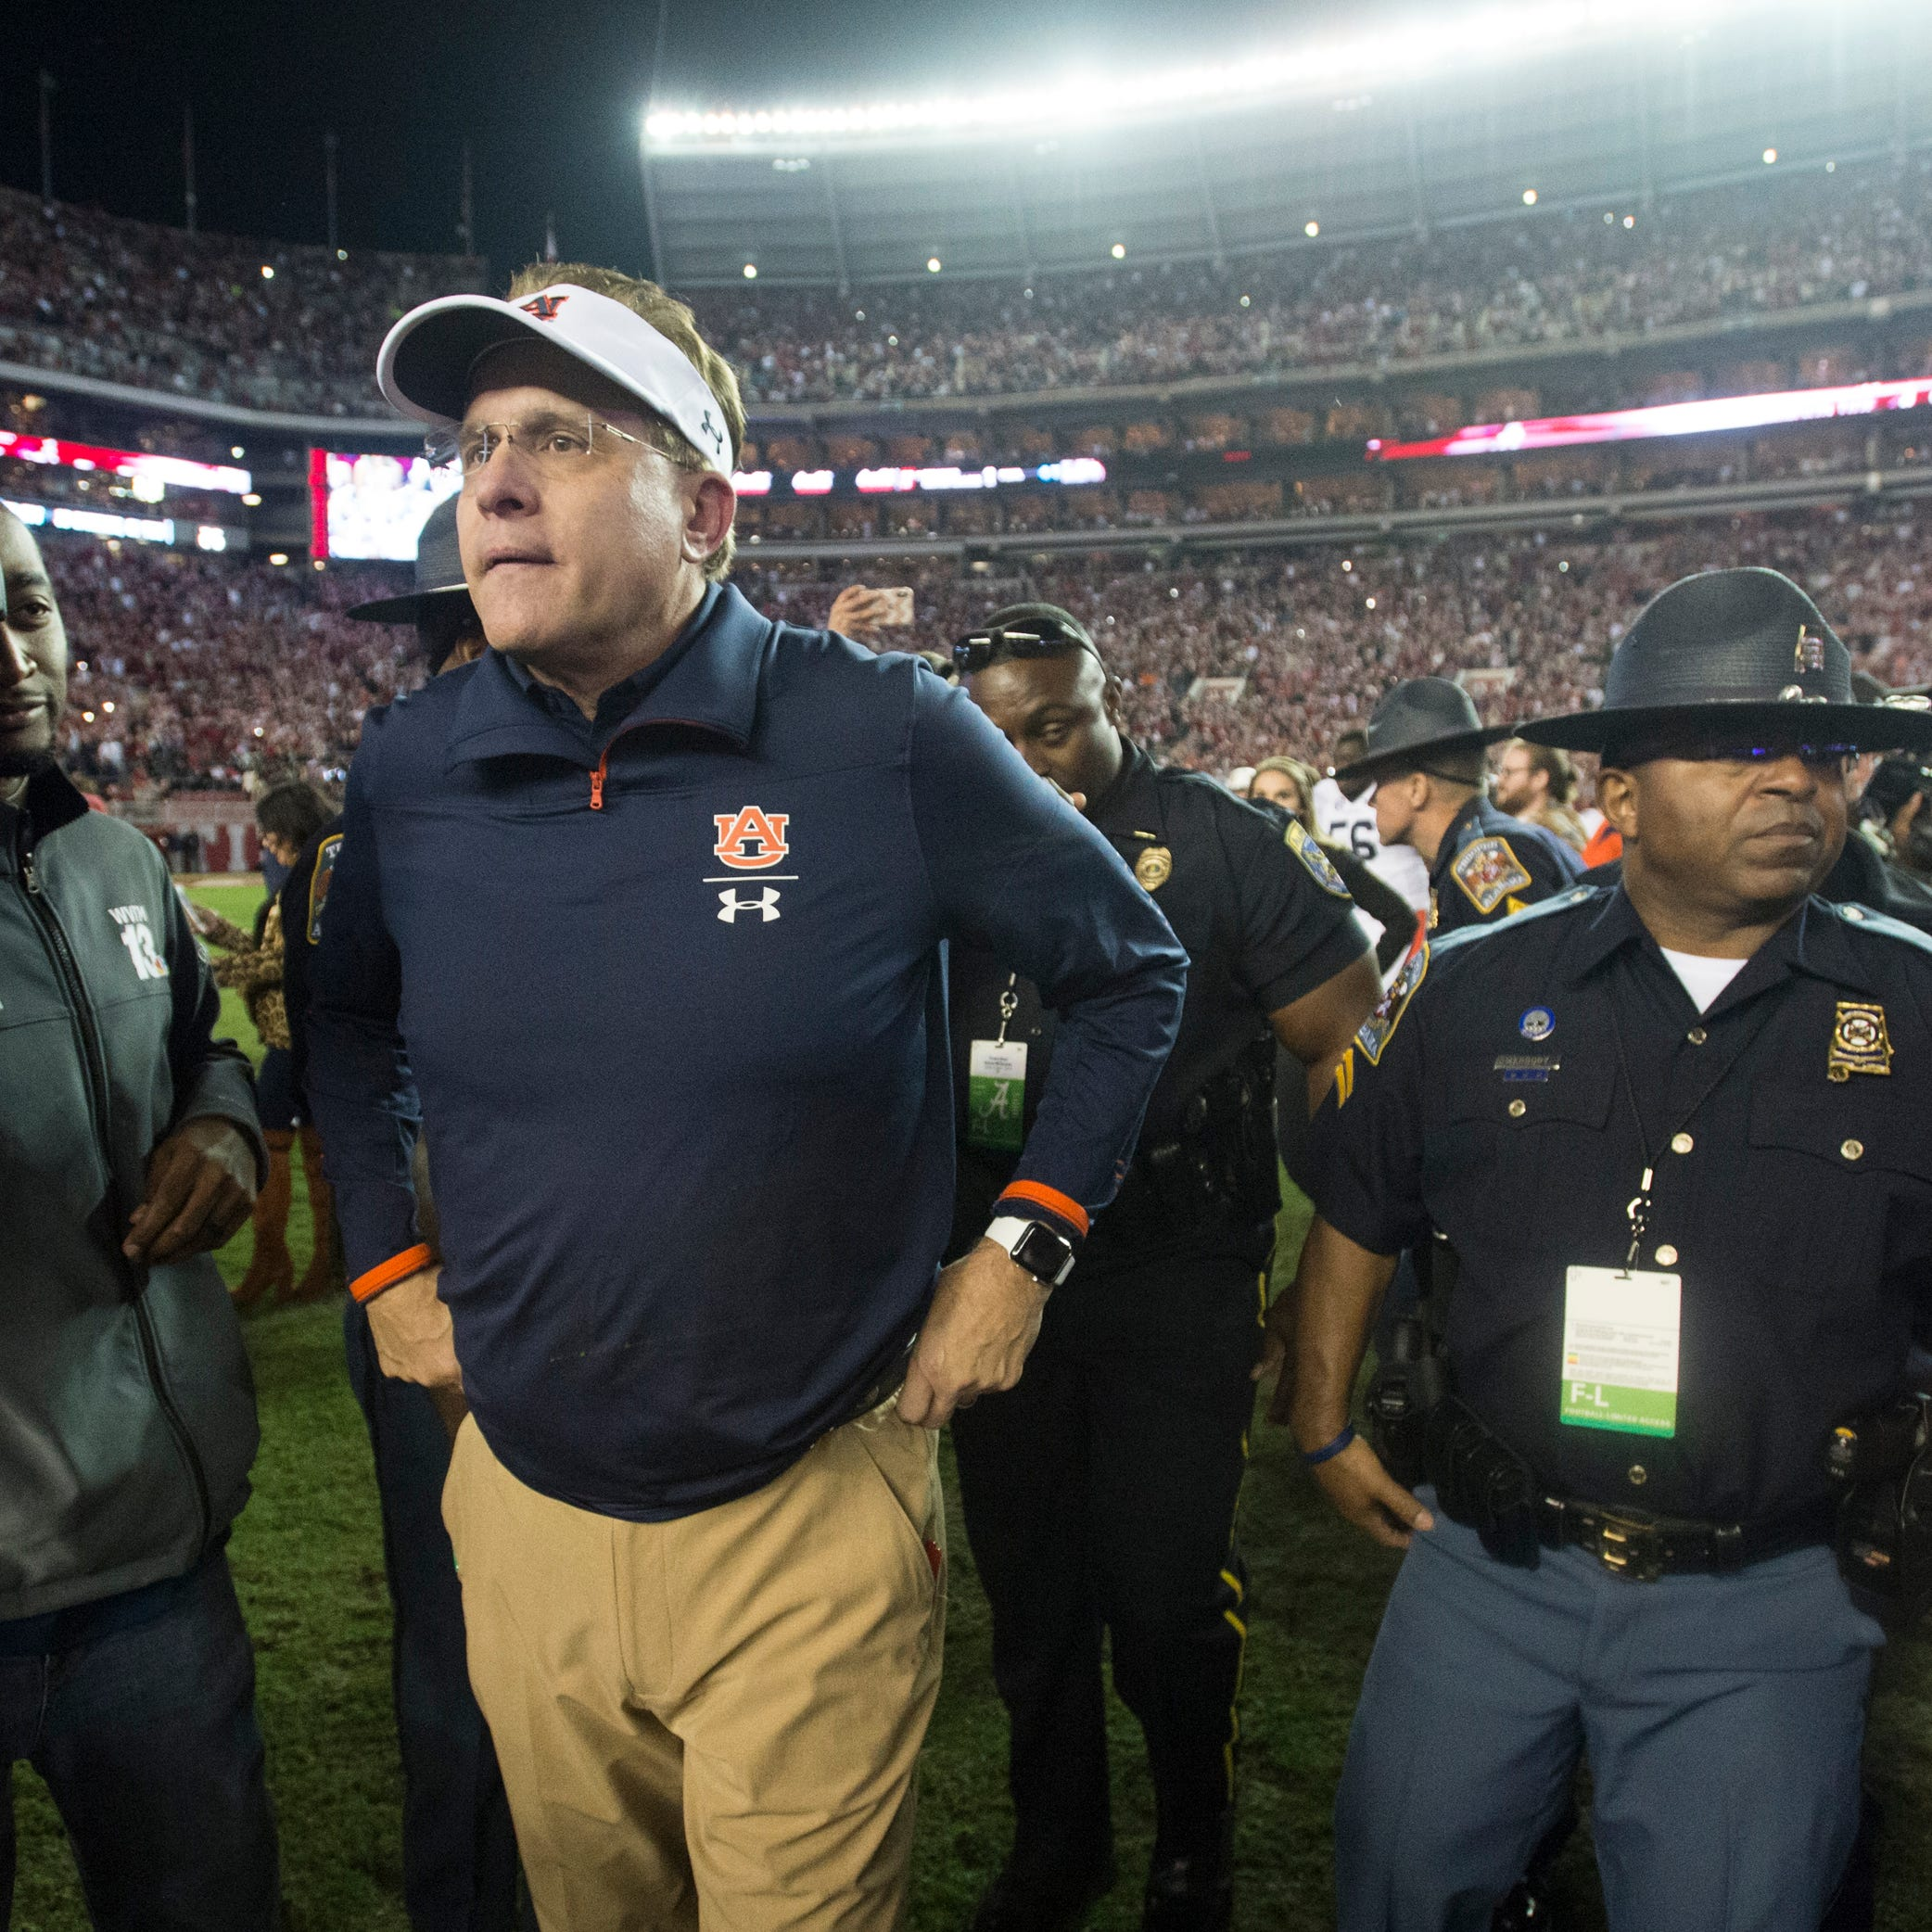 Music City Bowl, Auburn vs. Purdue: TV, streaming, odds, game time